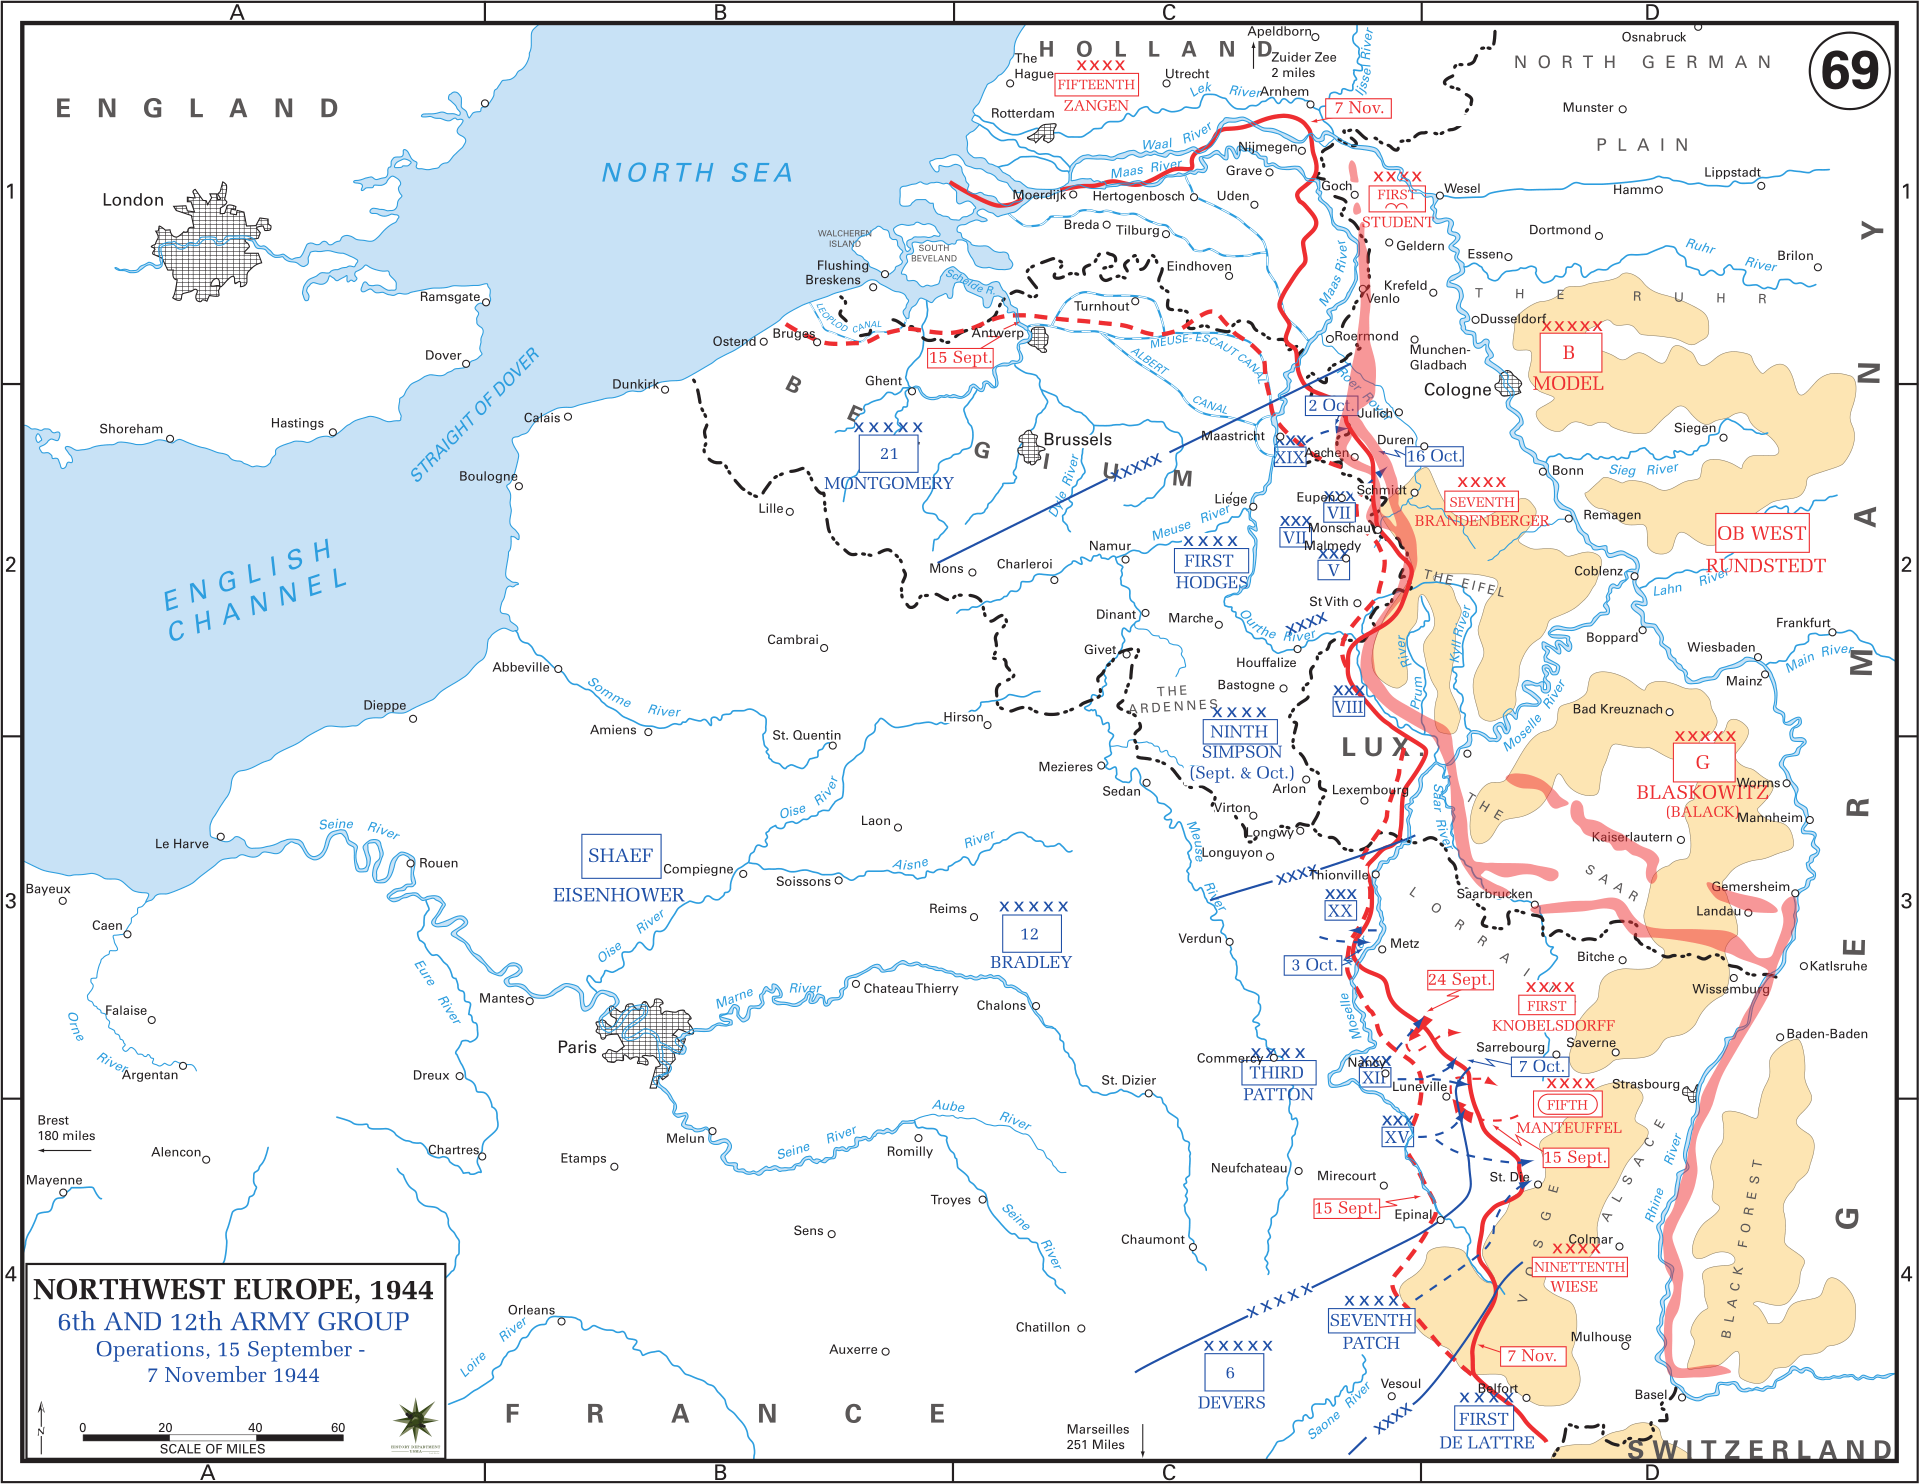 Western Front Maps of World War II - Inflab - Medium on vietnam map 1944, italy map 1944, belgium map 1944, poland map 1944, world war 2 map 1944, wwii map 1944, europe during wwii, north africa map 1944, netherlands map 1944, german map 1944, ukraine map 1944, balkans map 1944, middle east map 1944, germany map 1944, ww2 world map 1944, france map 1944, georgia map 1944, world war i map 1944, czechoslovakia map 1944, hungary map 1944,